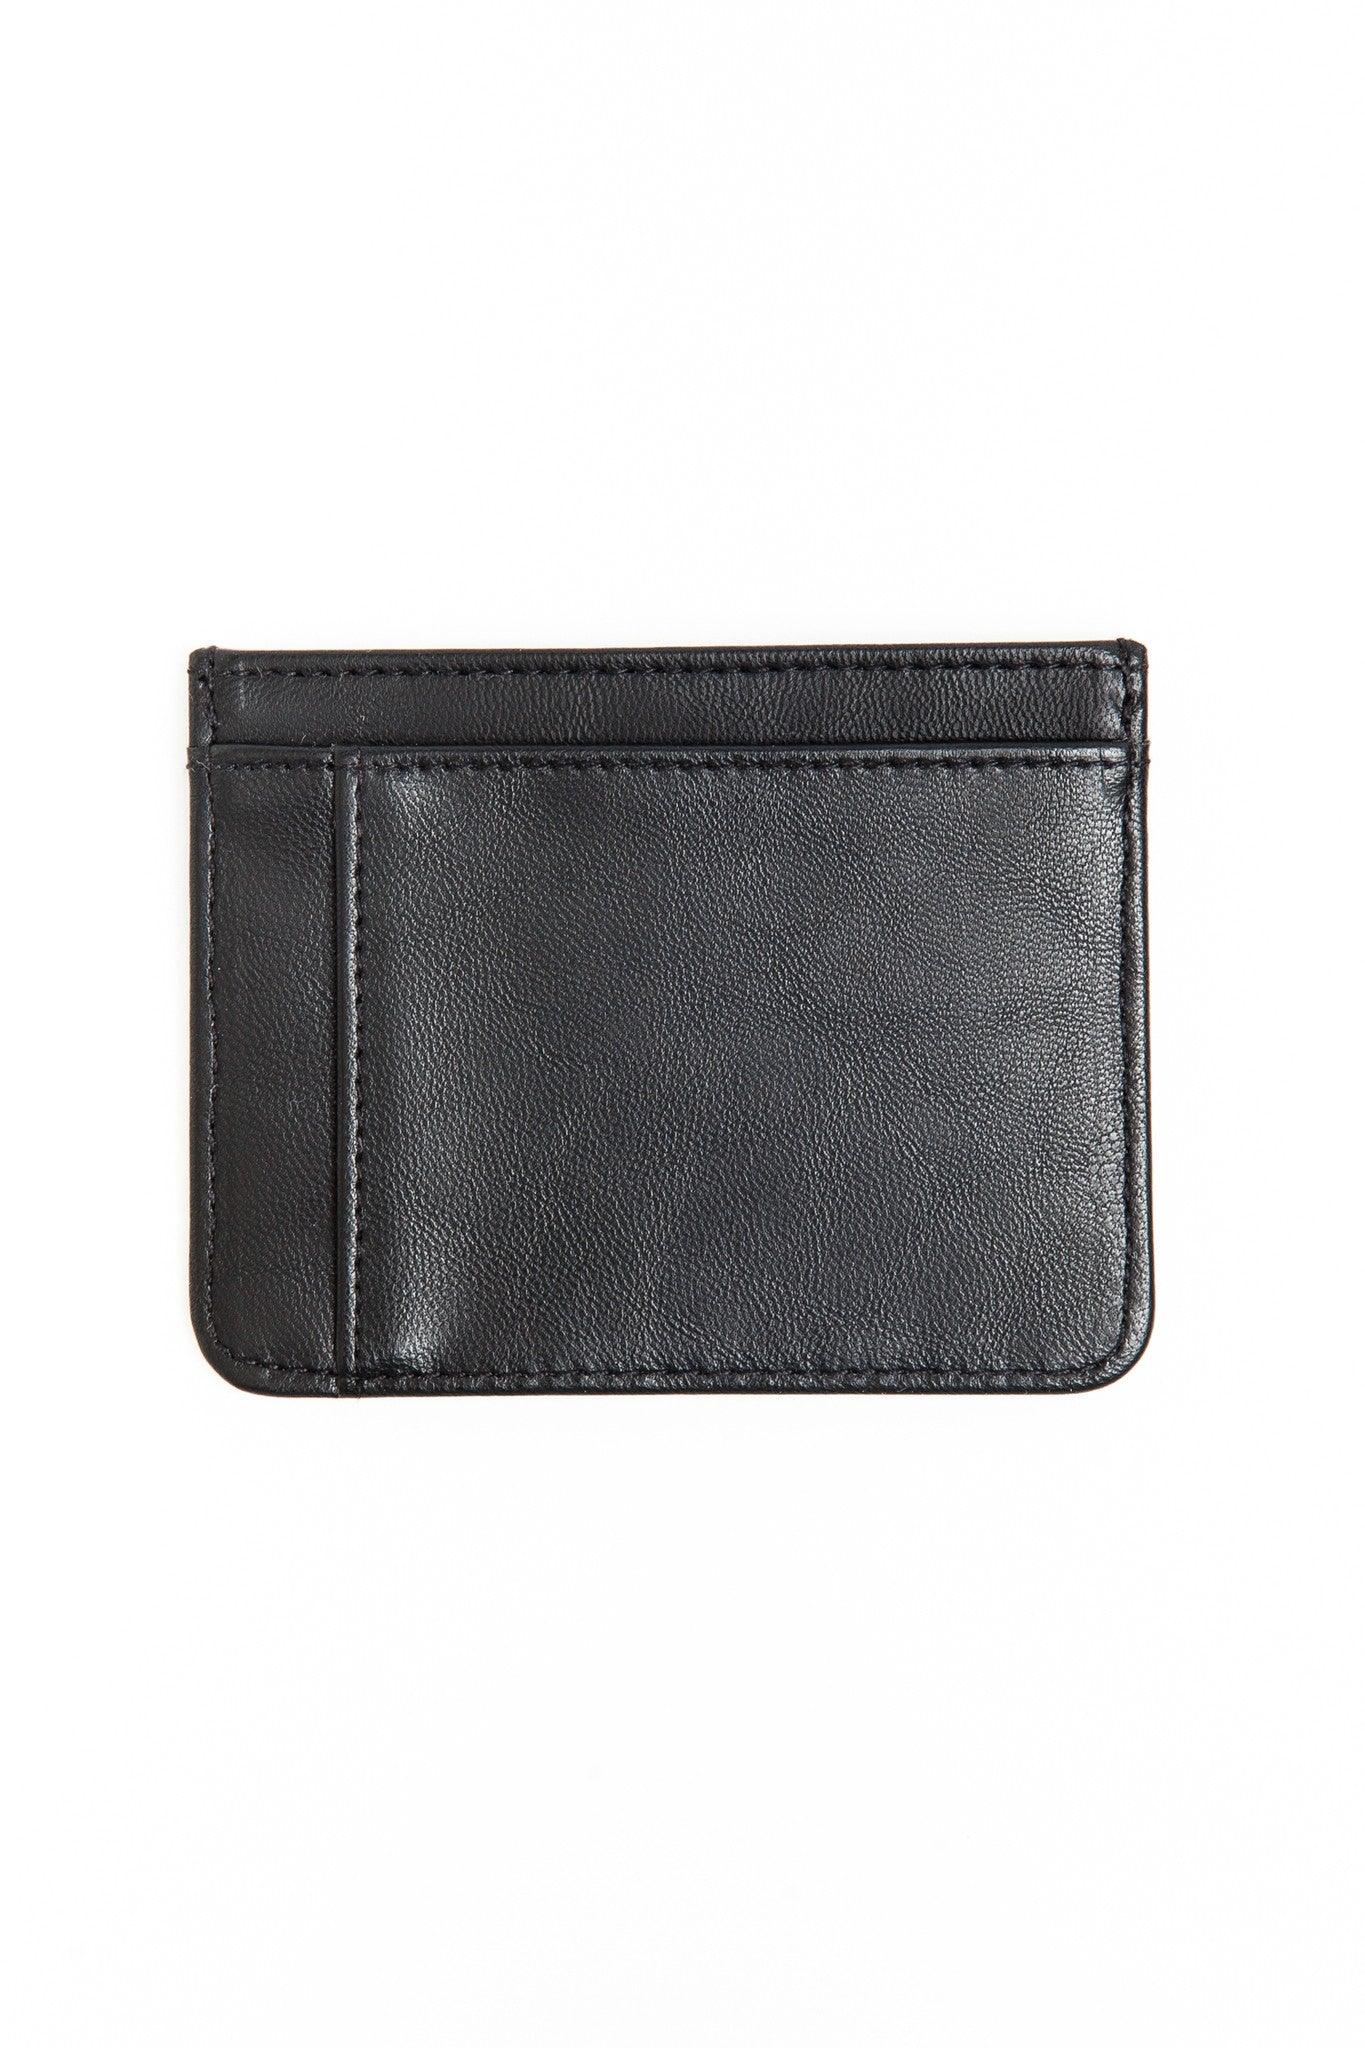 OBEY - Gentry Deuce ID Wallet, Black/Tan - The Giant Peach